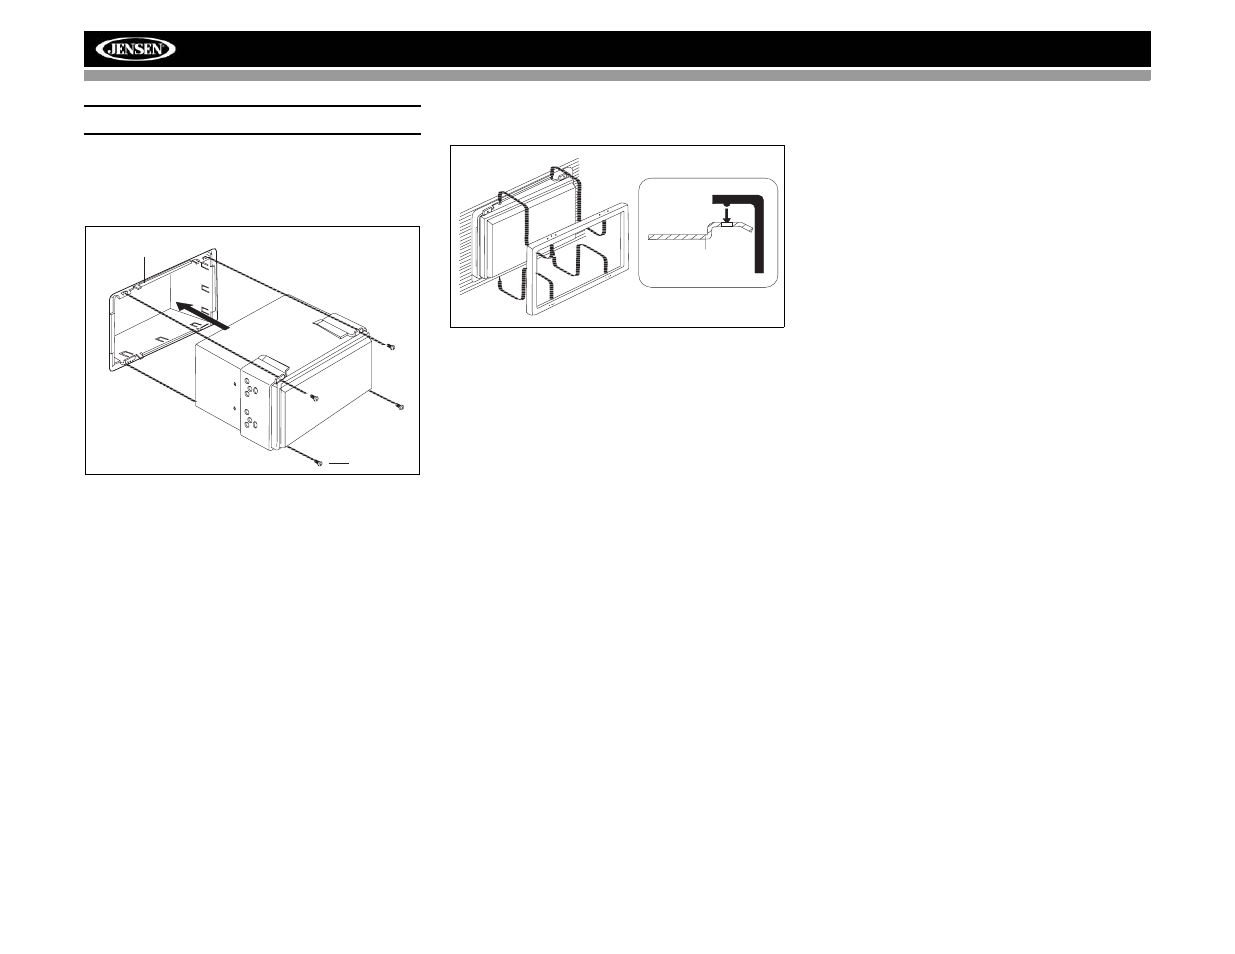 Amm12n   Advent AMM12N User Manual   Page 10 / 44